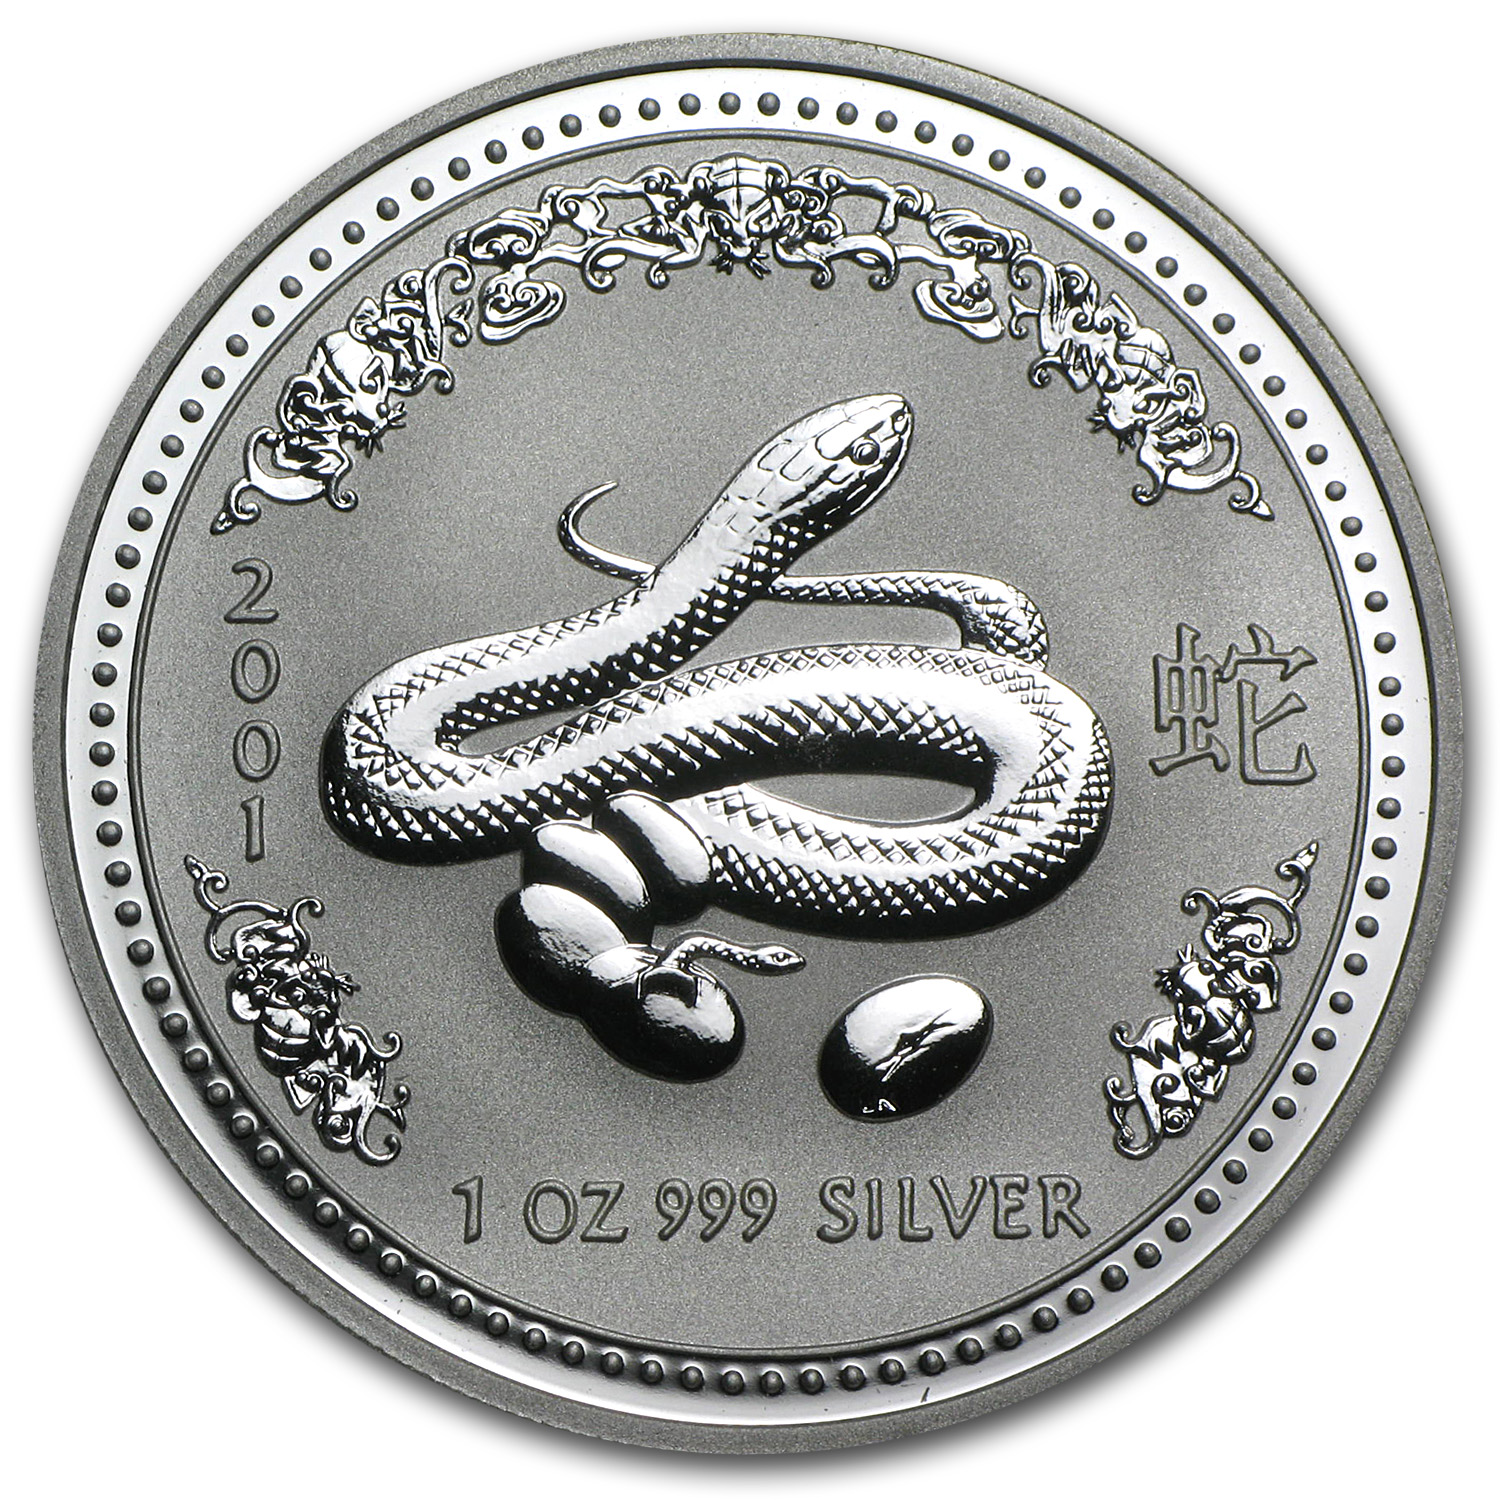 2001 1 oz Silver Australian Year of the Snake BU